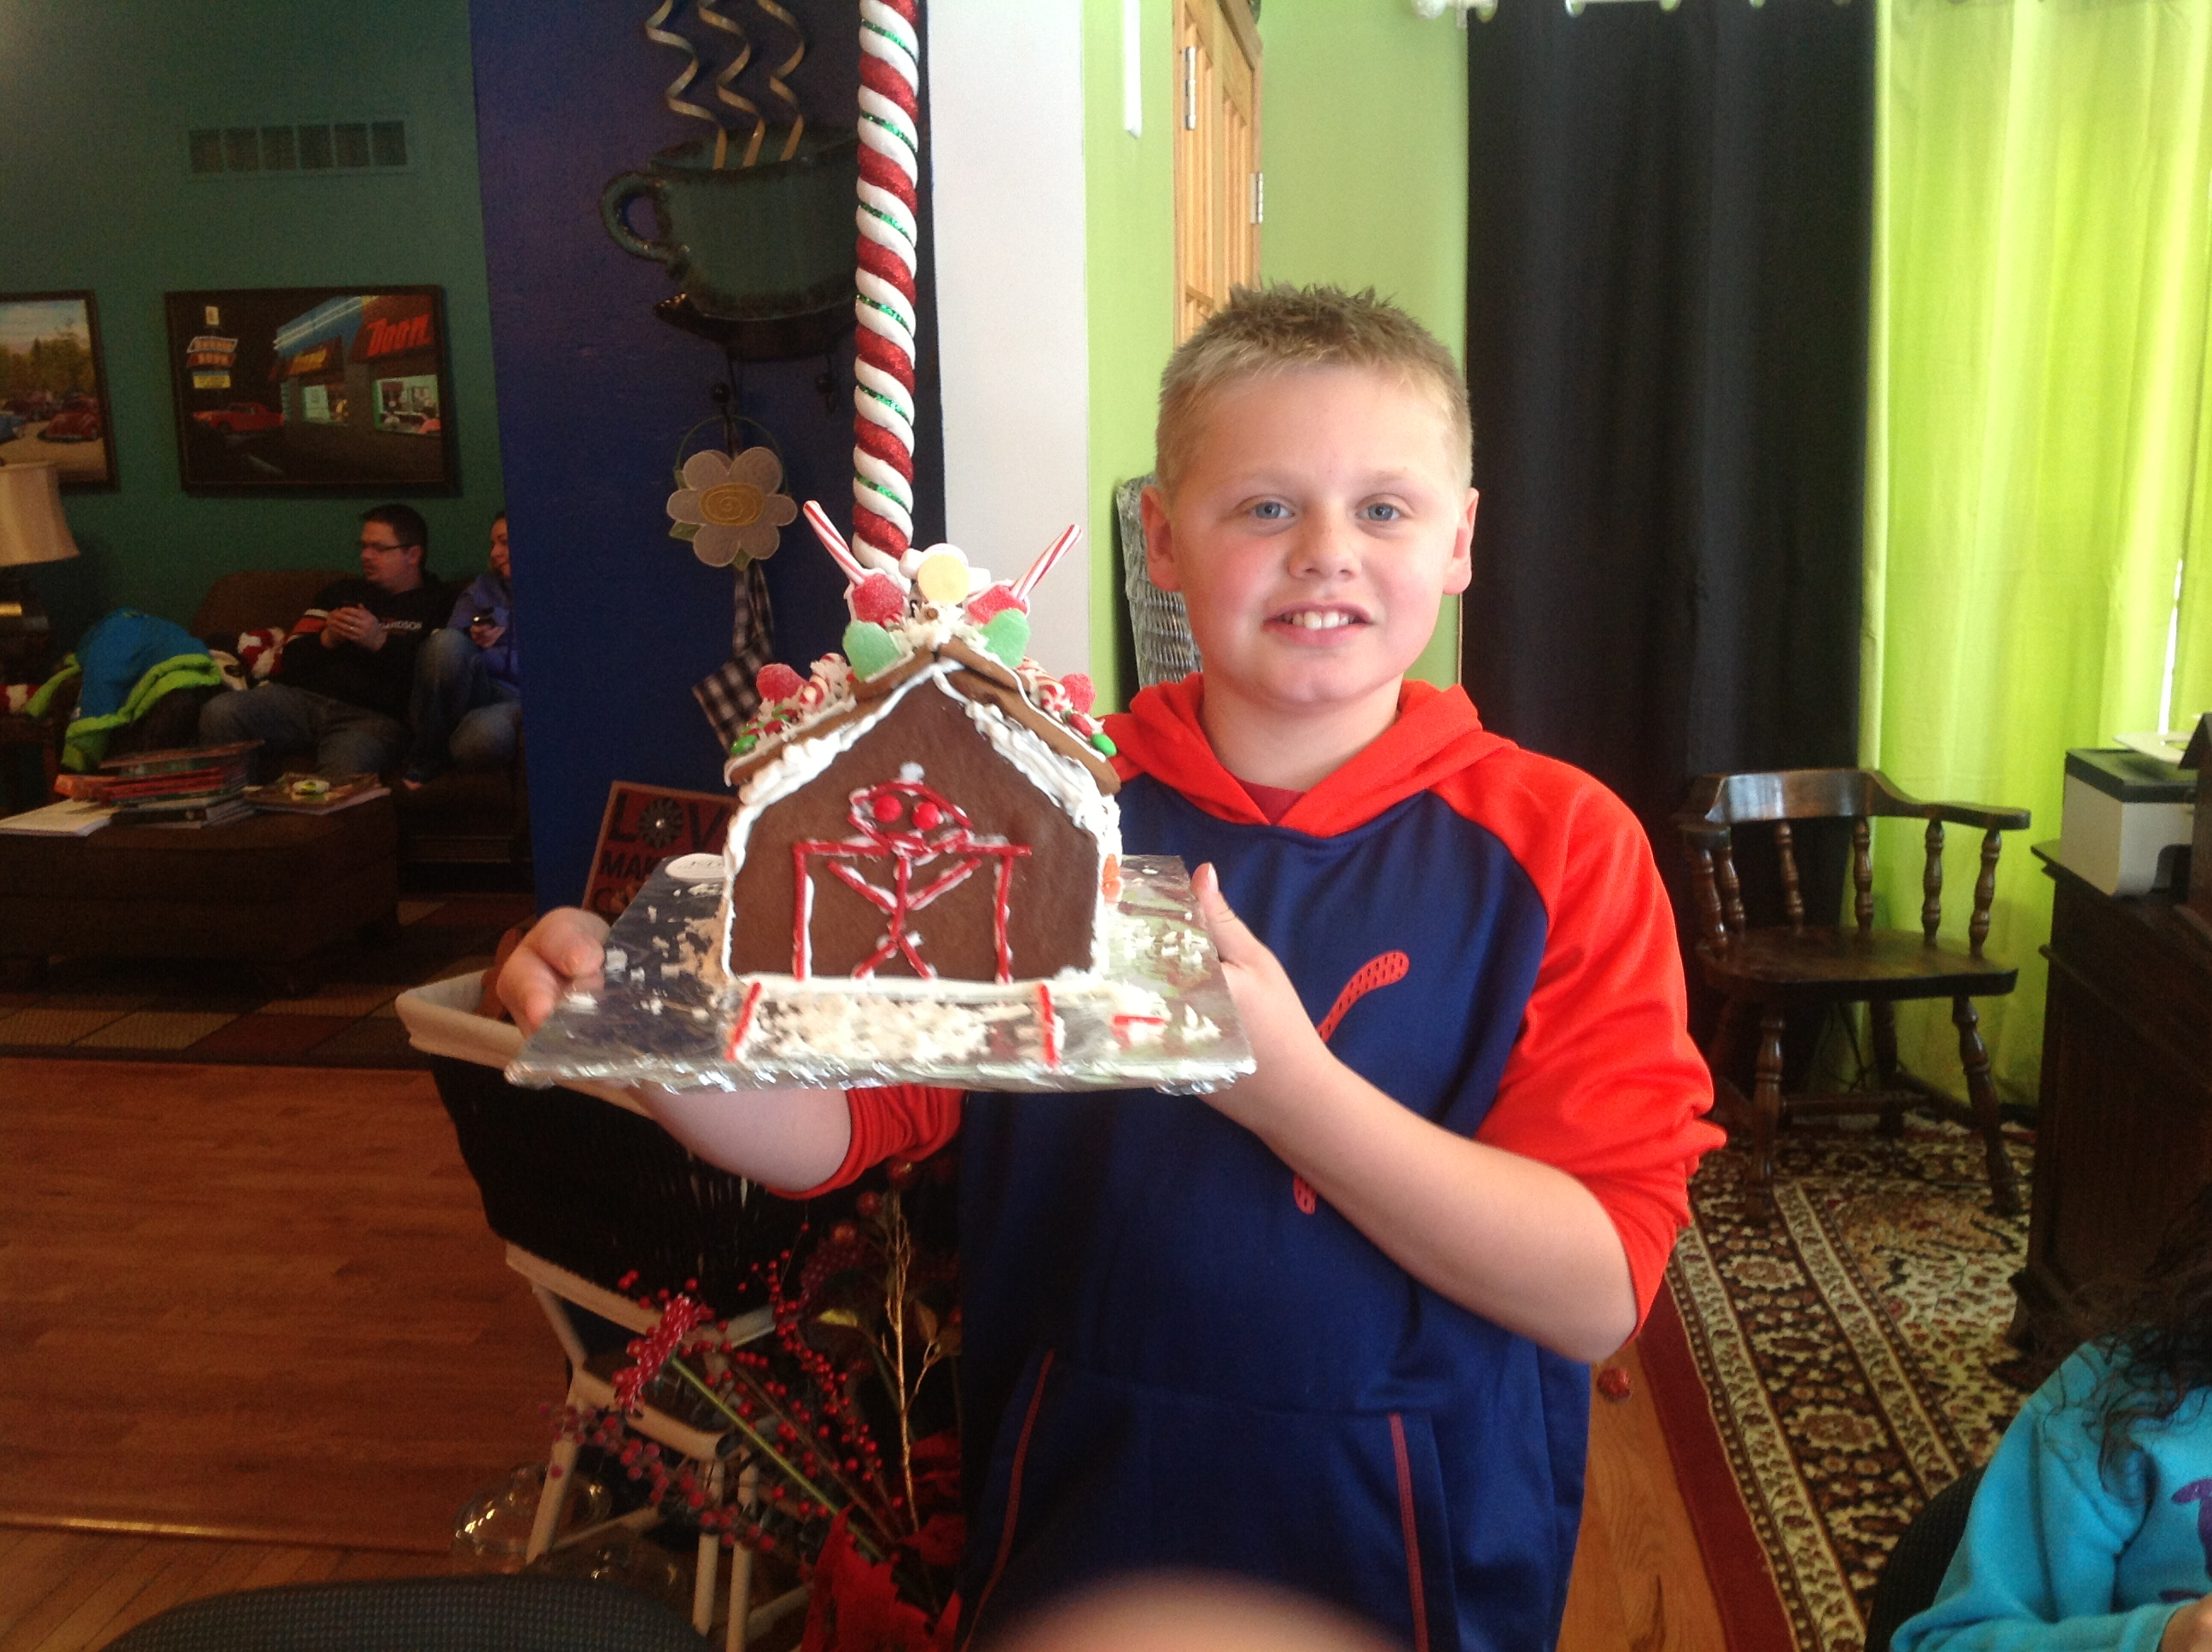 photo of gingerbread house with hocky goal